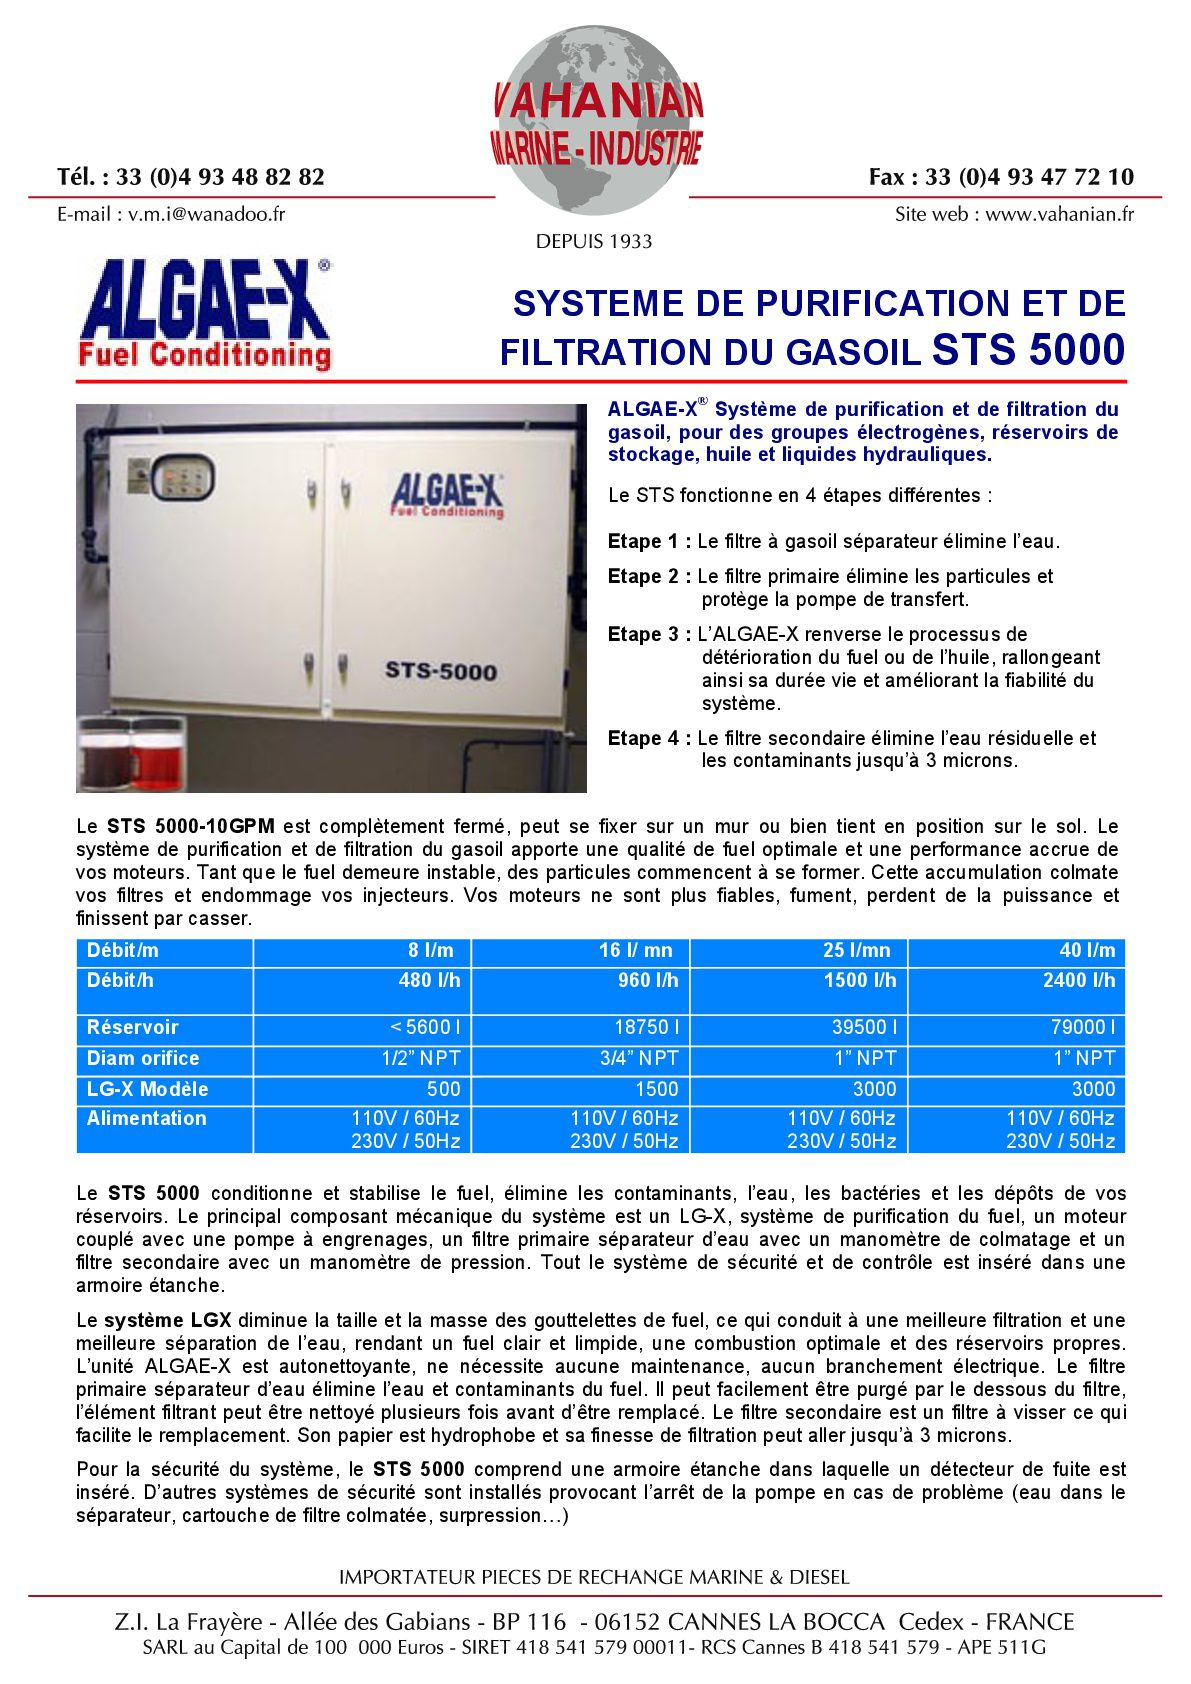 Document sur le système de purification de carburant Algae-x.